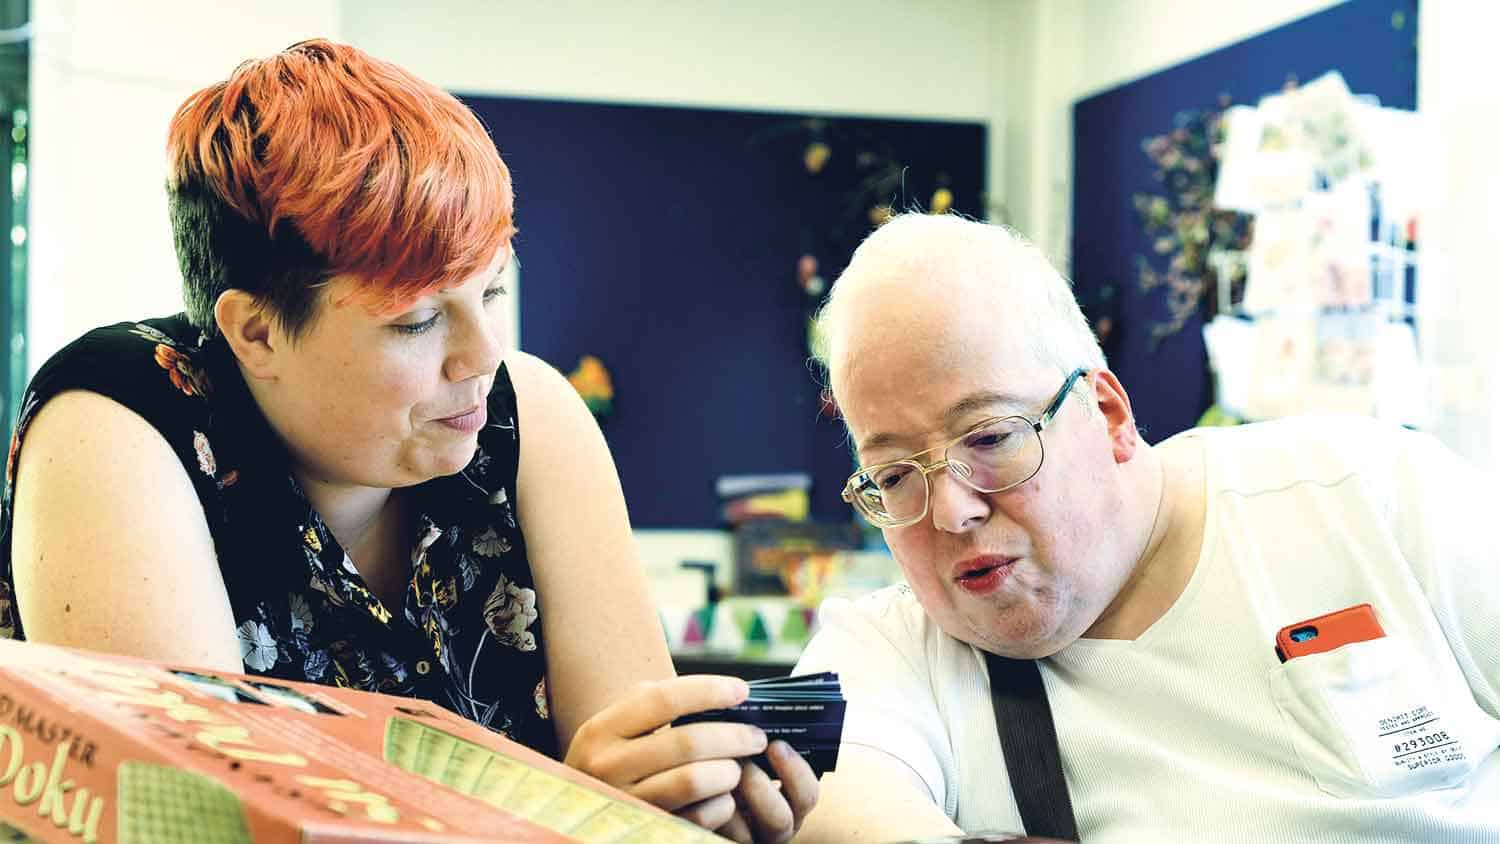 Patient with a carer looking at an electronic display working together